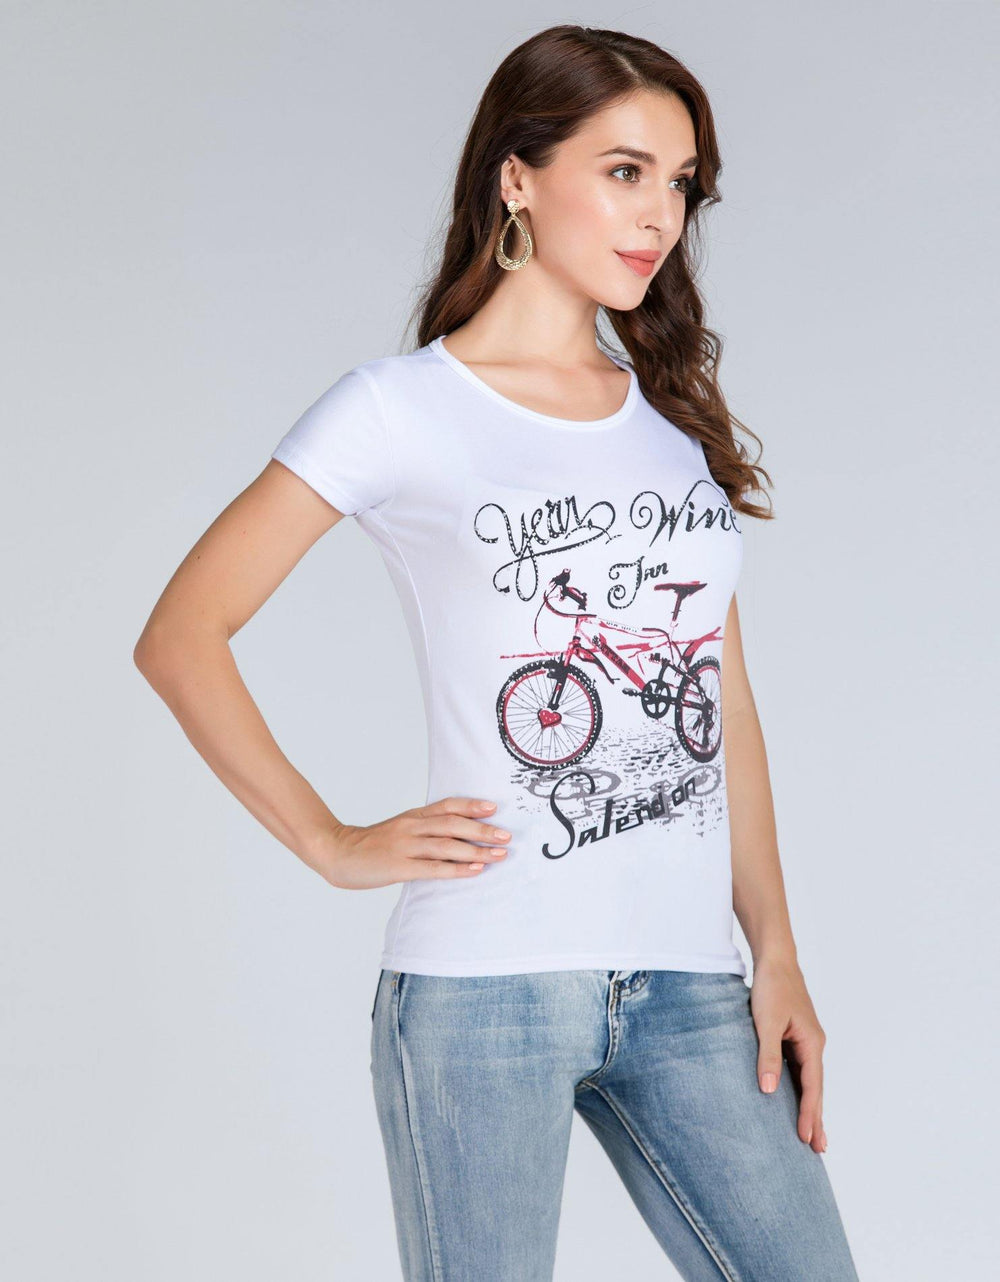 Cycle Art Tee - Brandsea UK